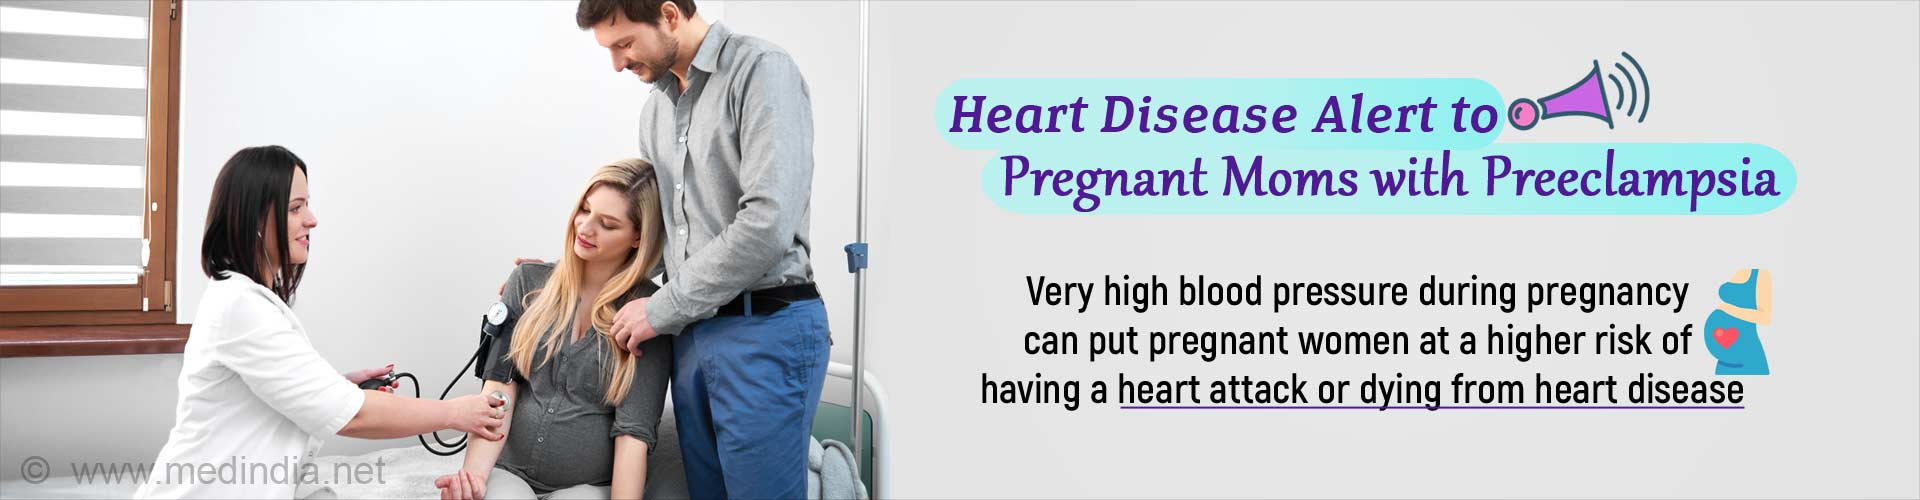 Very High Blood Pressure May Up Heart Disease Risk in Pregnant Moms